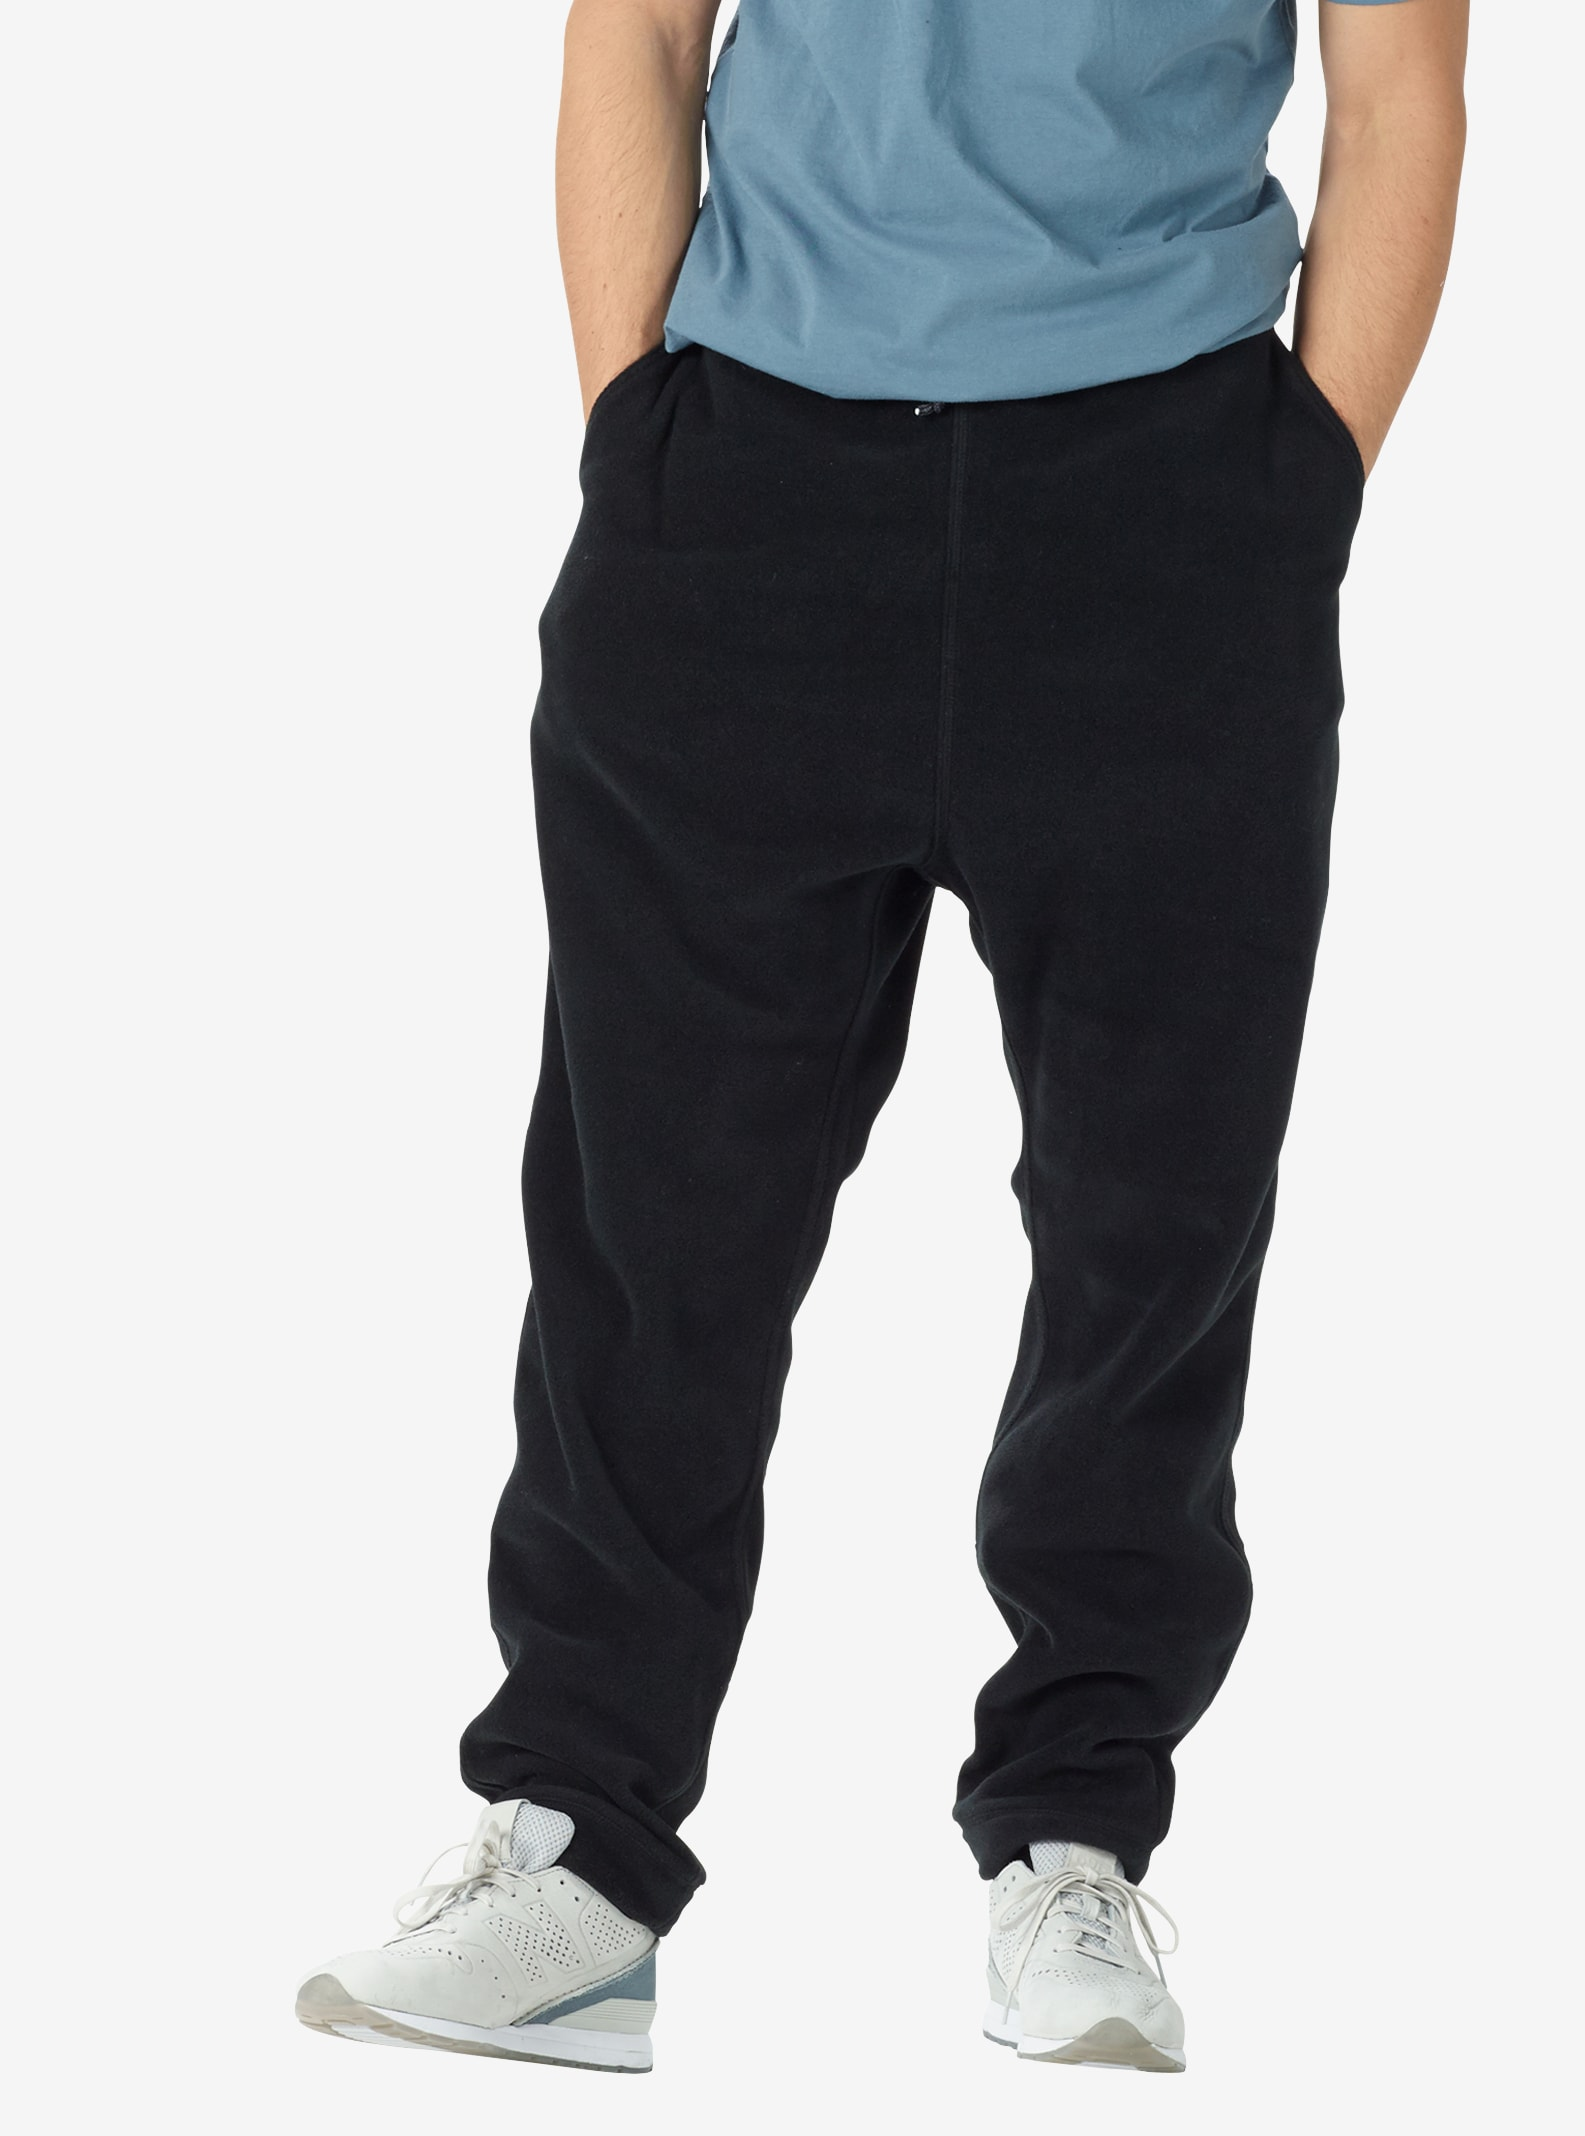 Men's Burton Hearth Fleece Pant shown in True Black